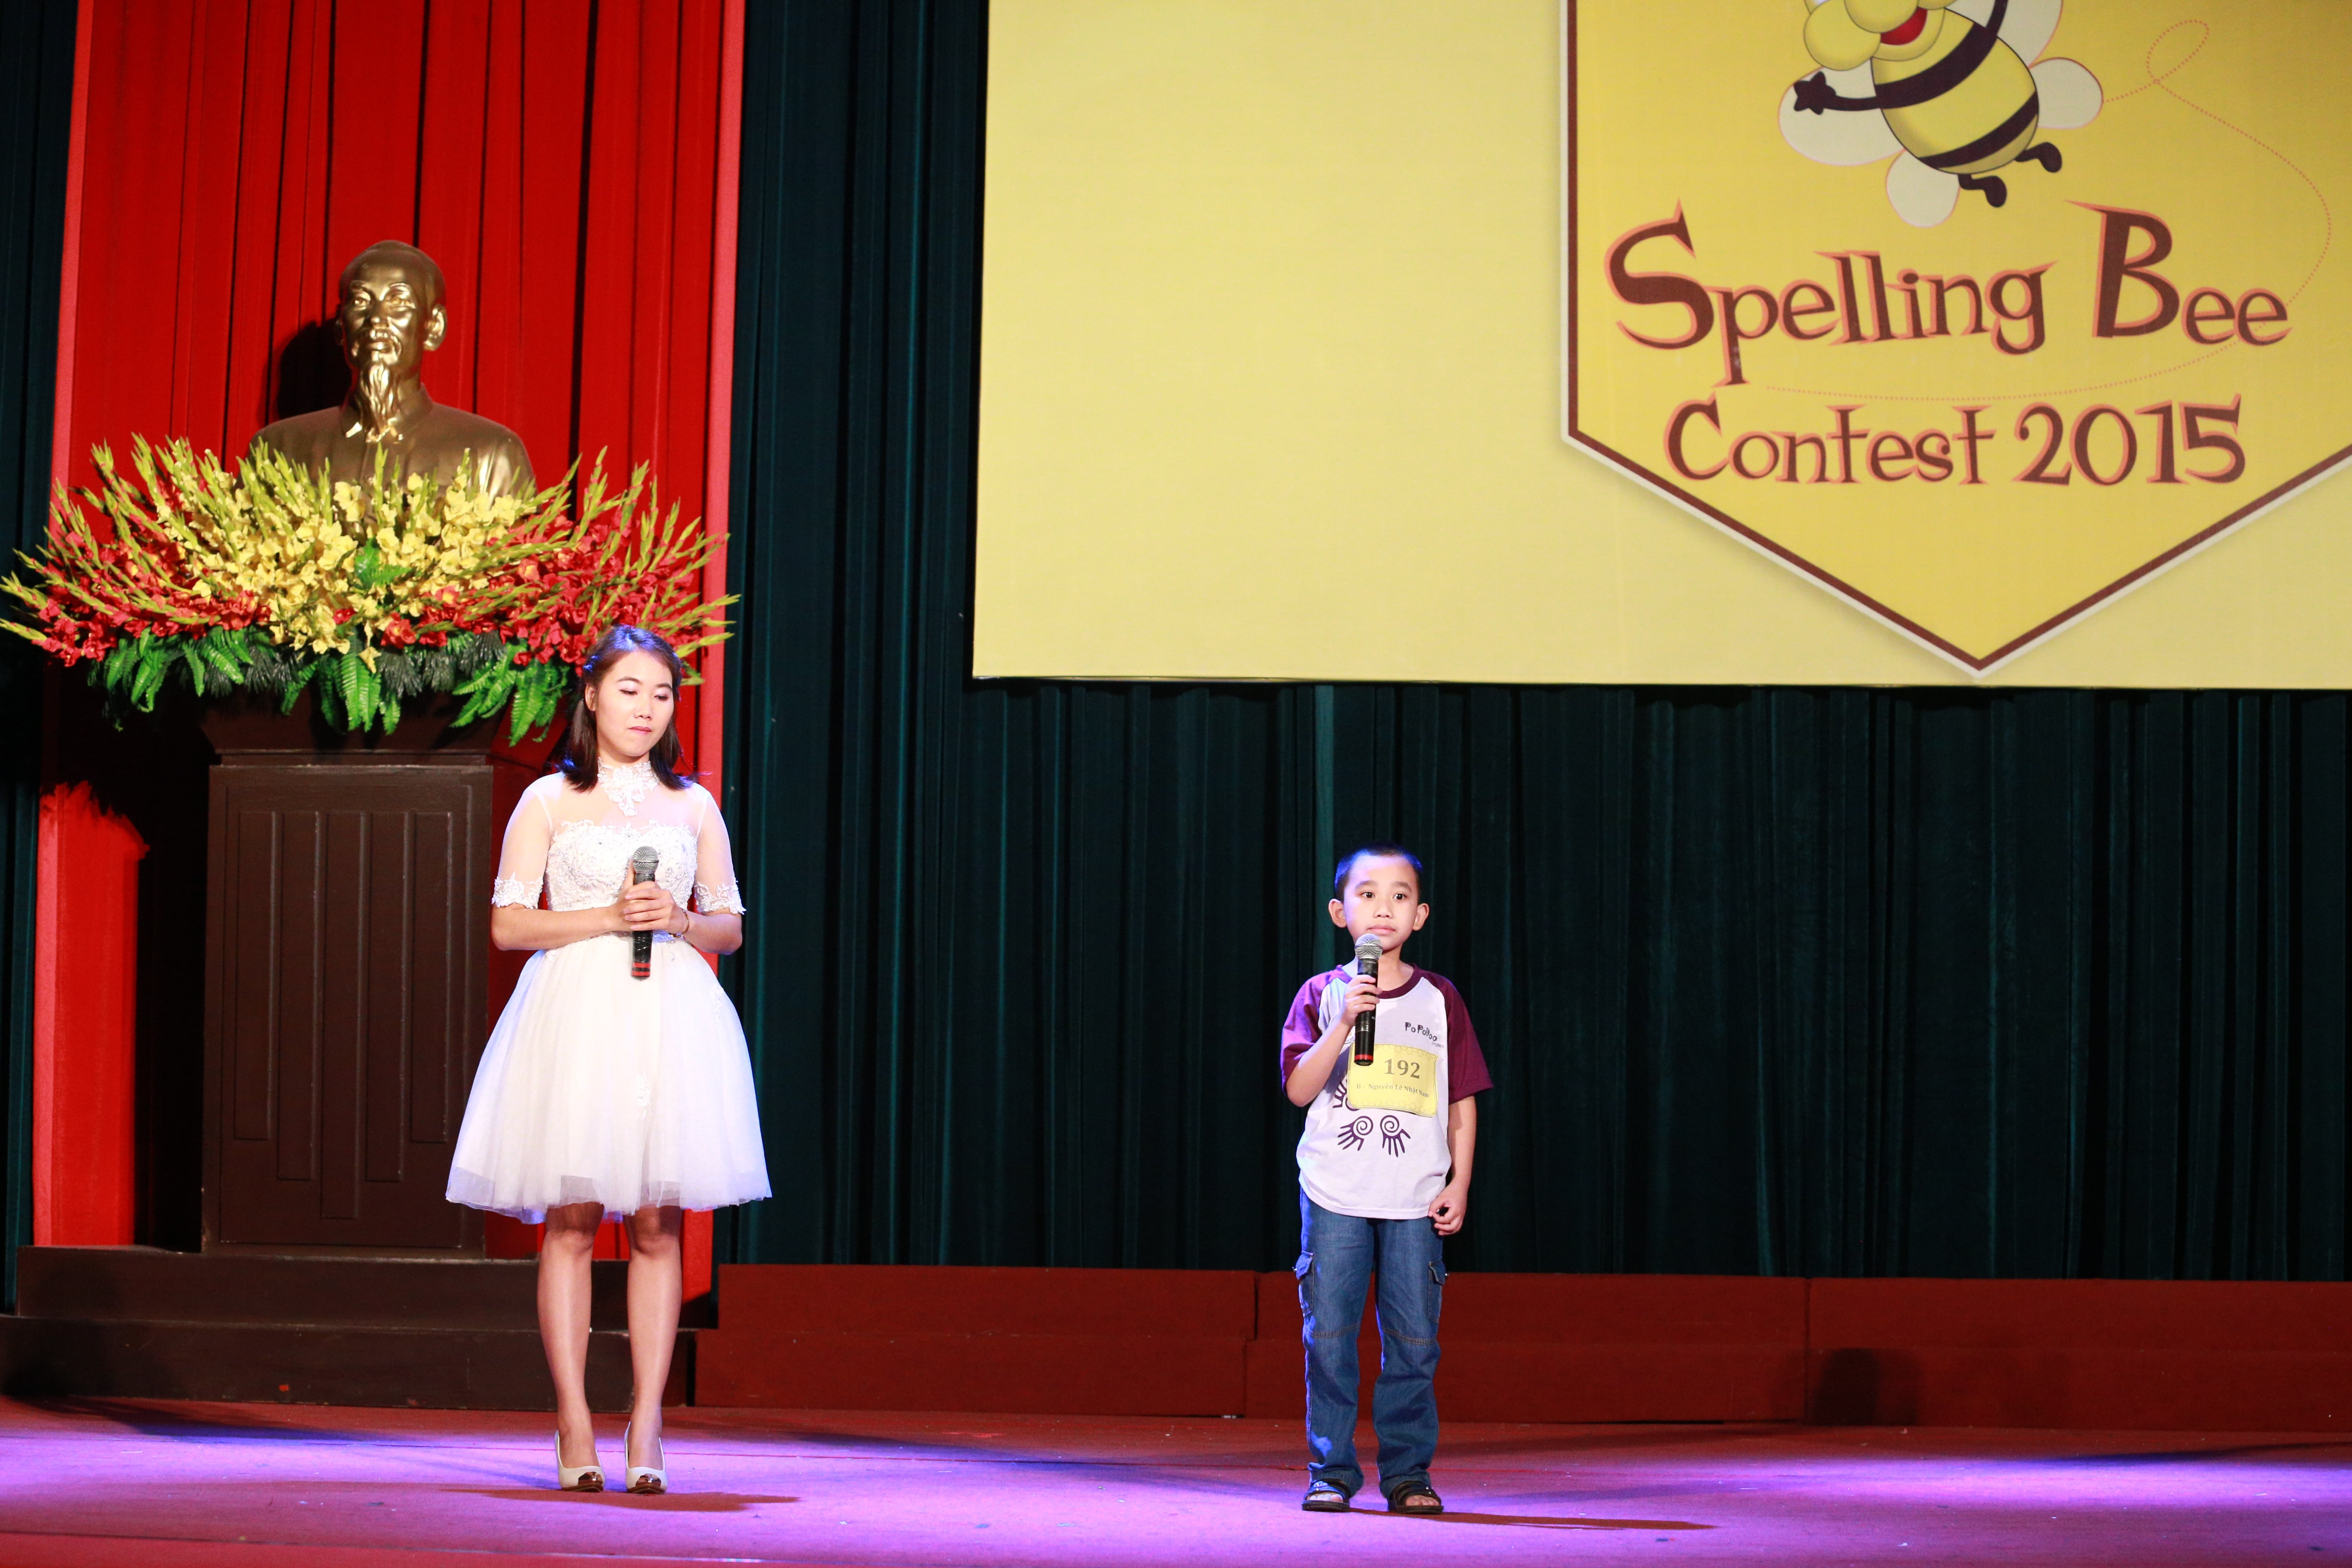 Throwback our Spelling Bee Contest 2015 Champions - Level B